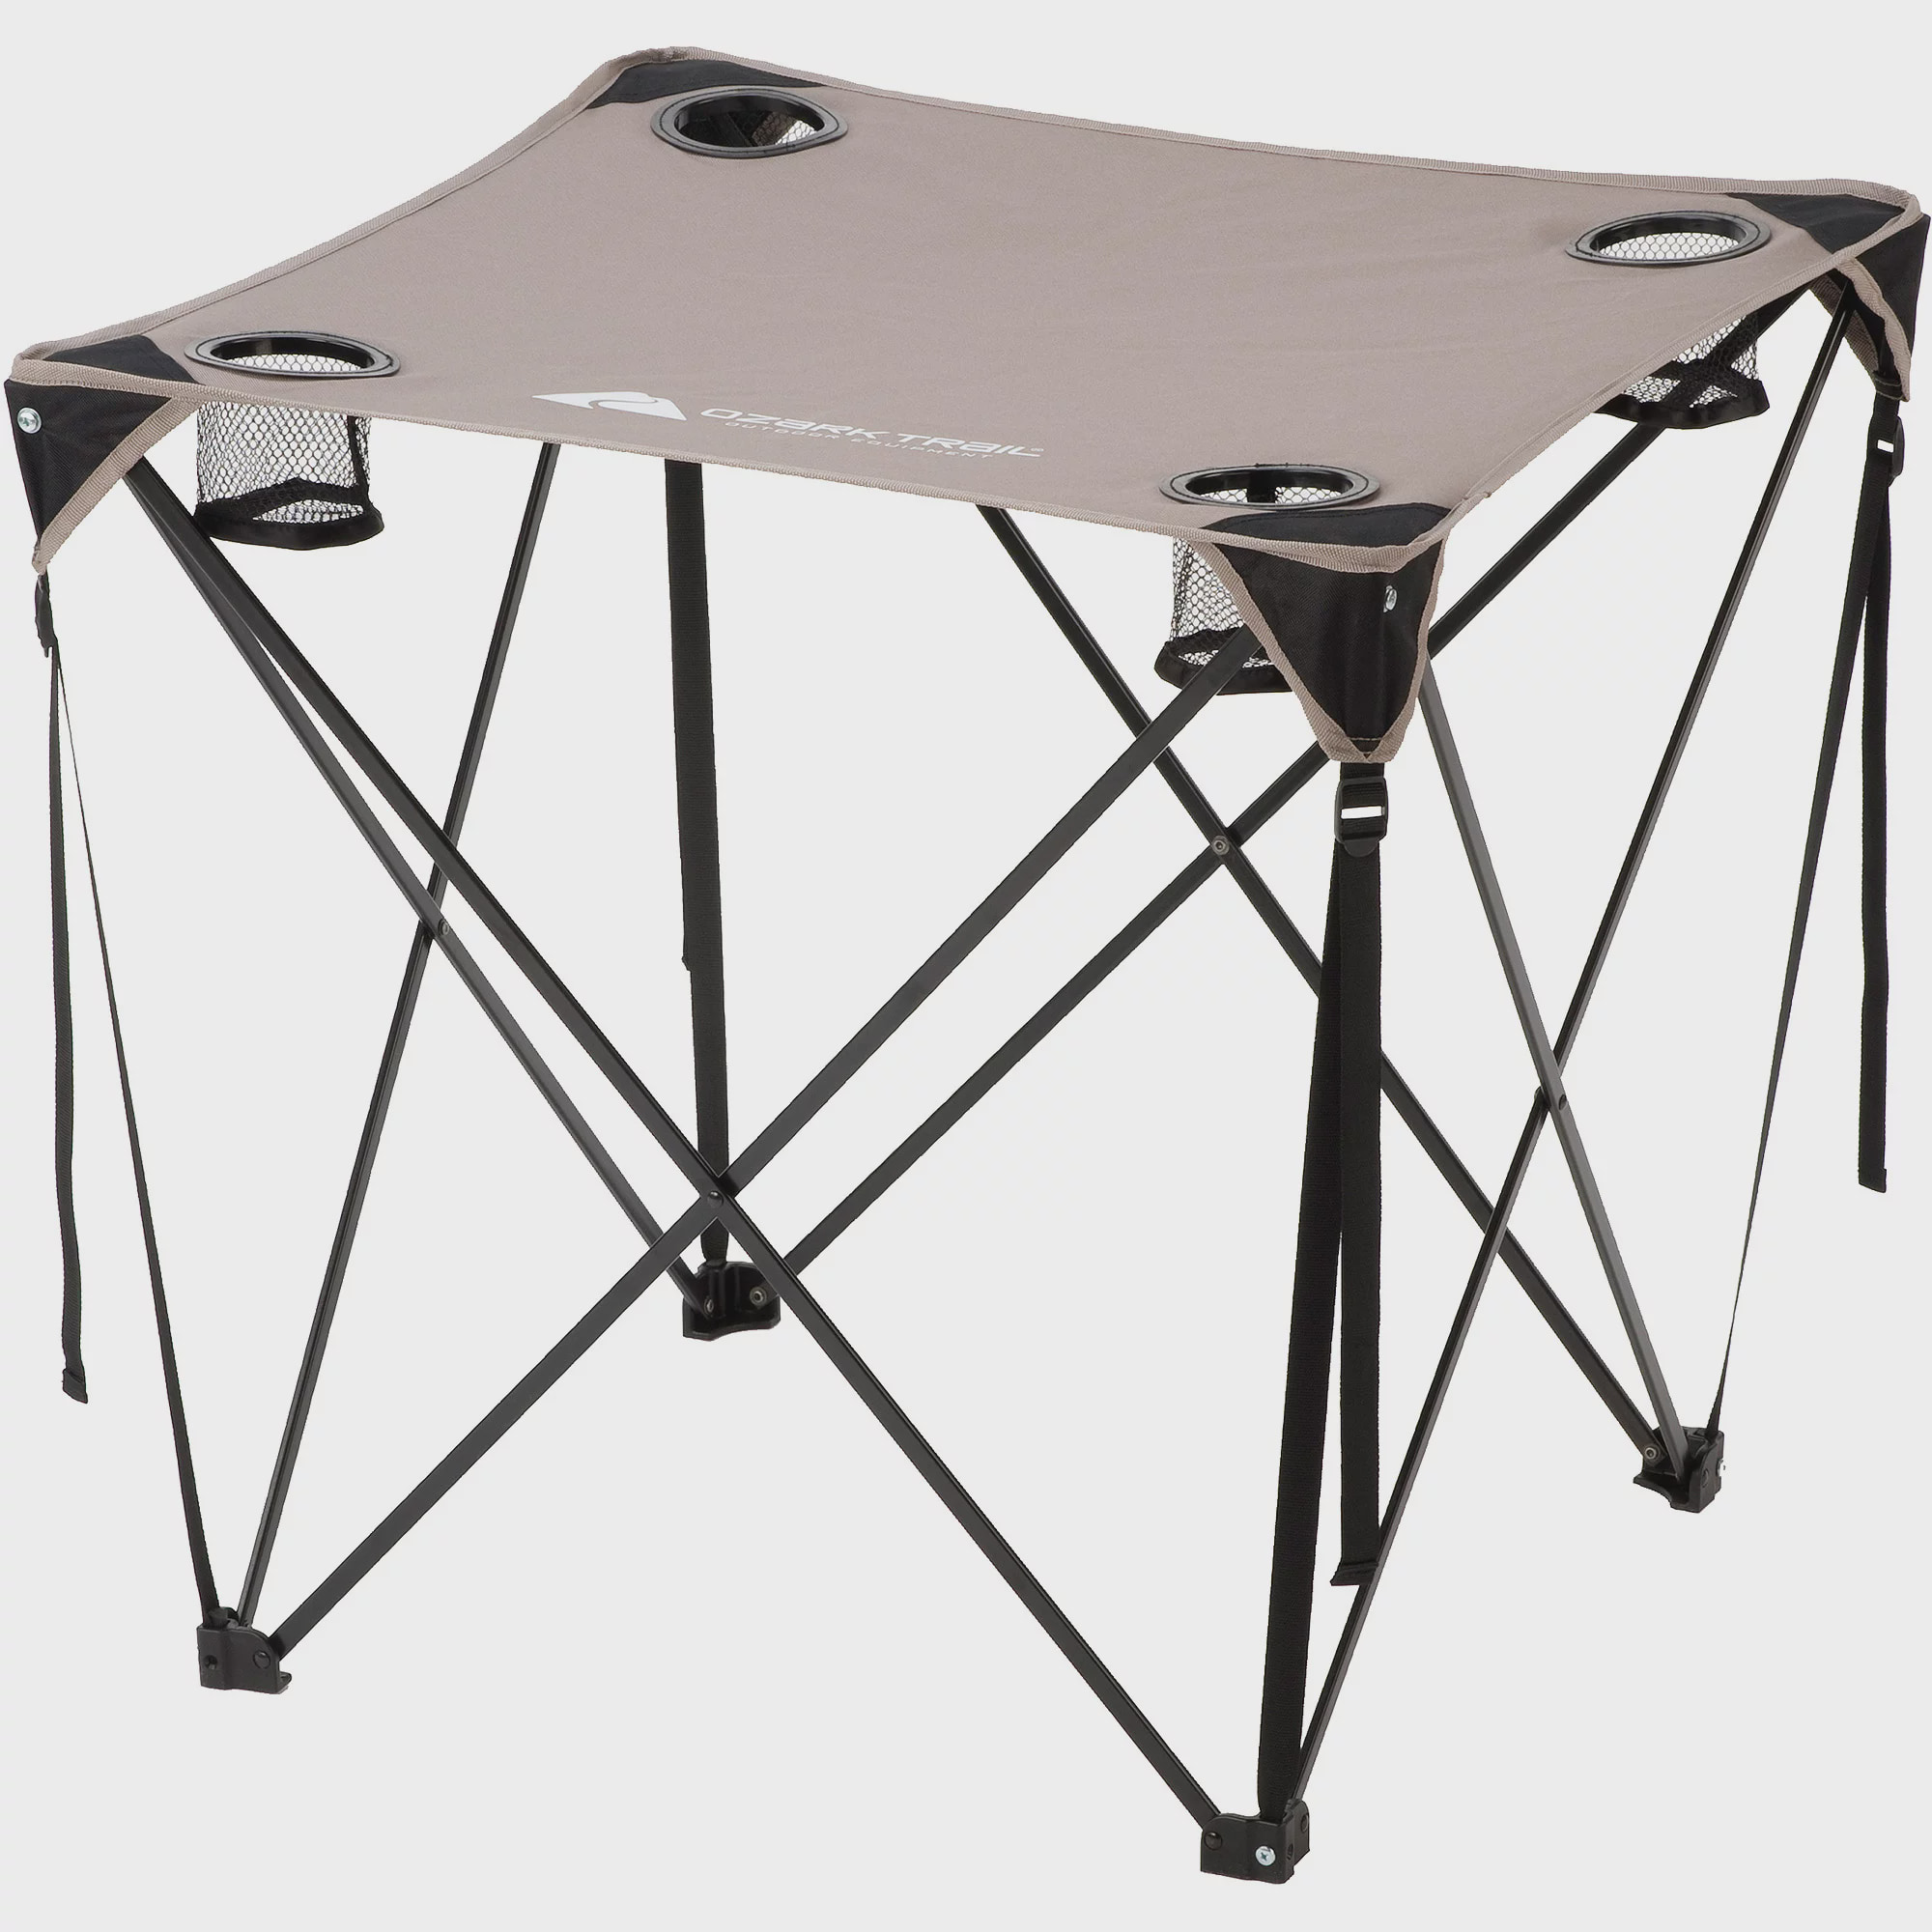 Ozark Trail Quad Table, Grey   Walmart.com